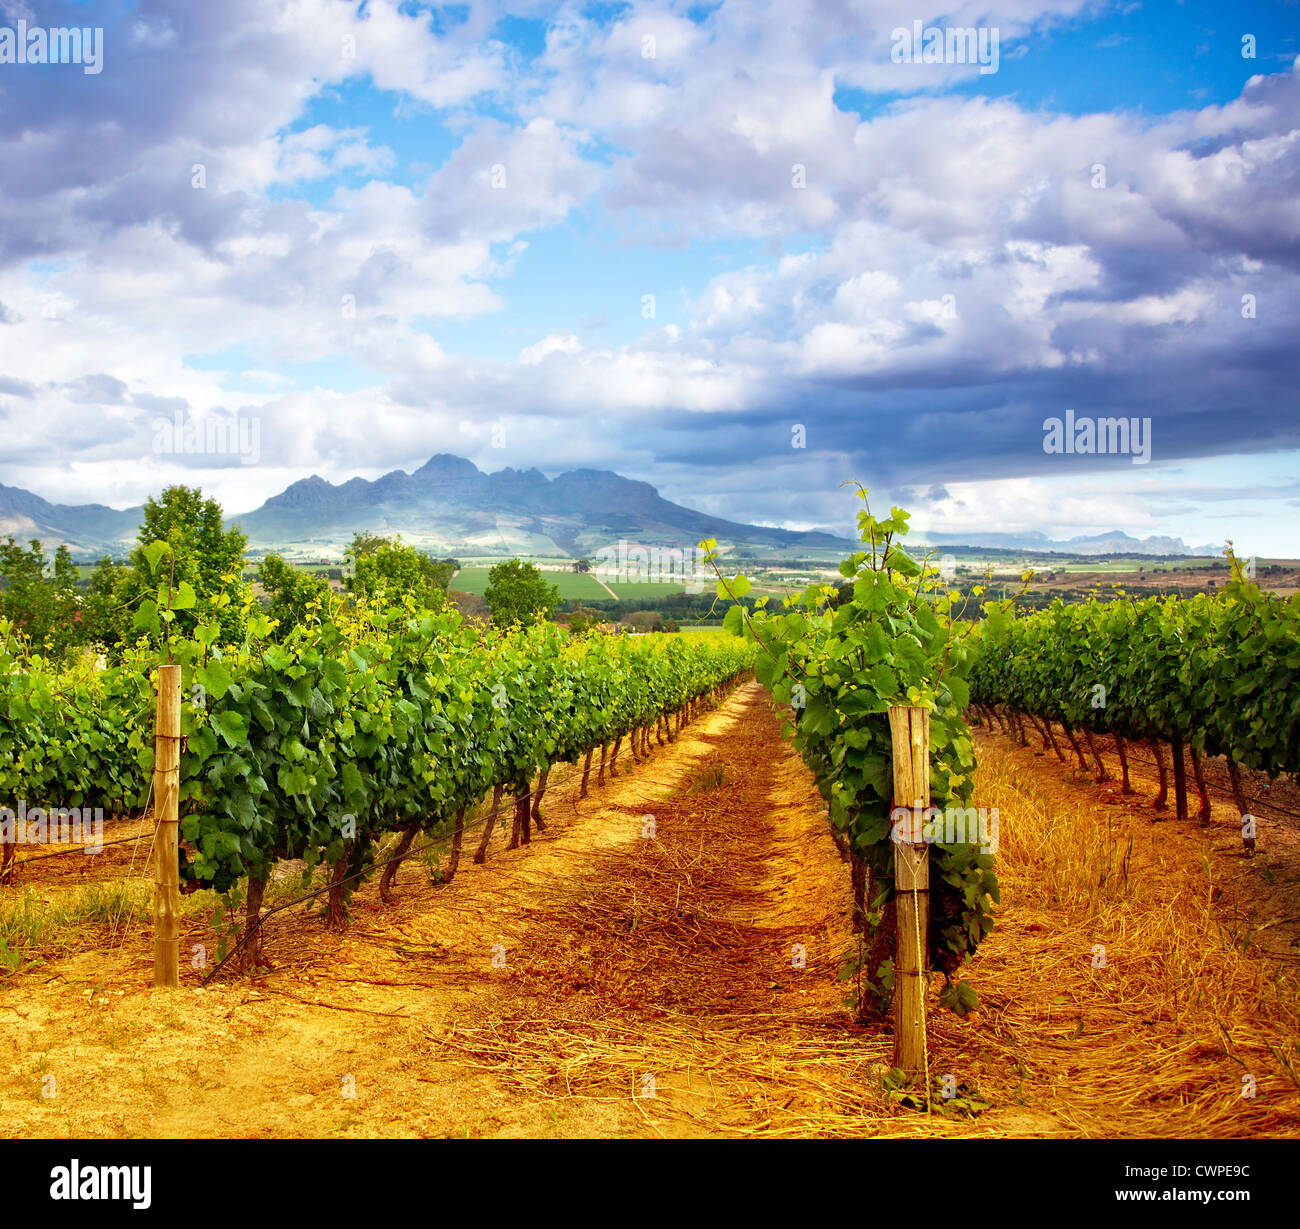 Picture of winery garden, blue sky, beautiful agricultural landscape, harvest season, grapes valley, field of fresh - Stock Image